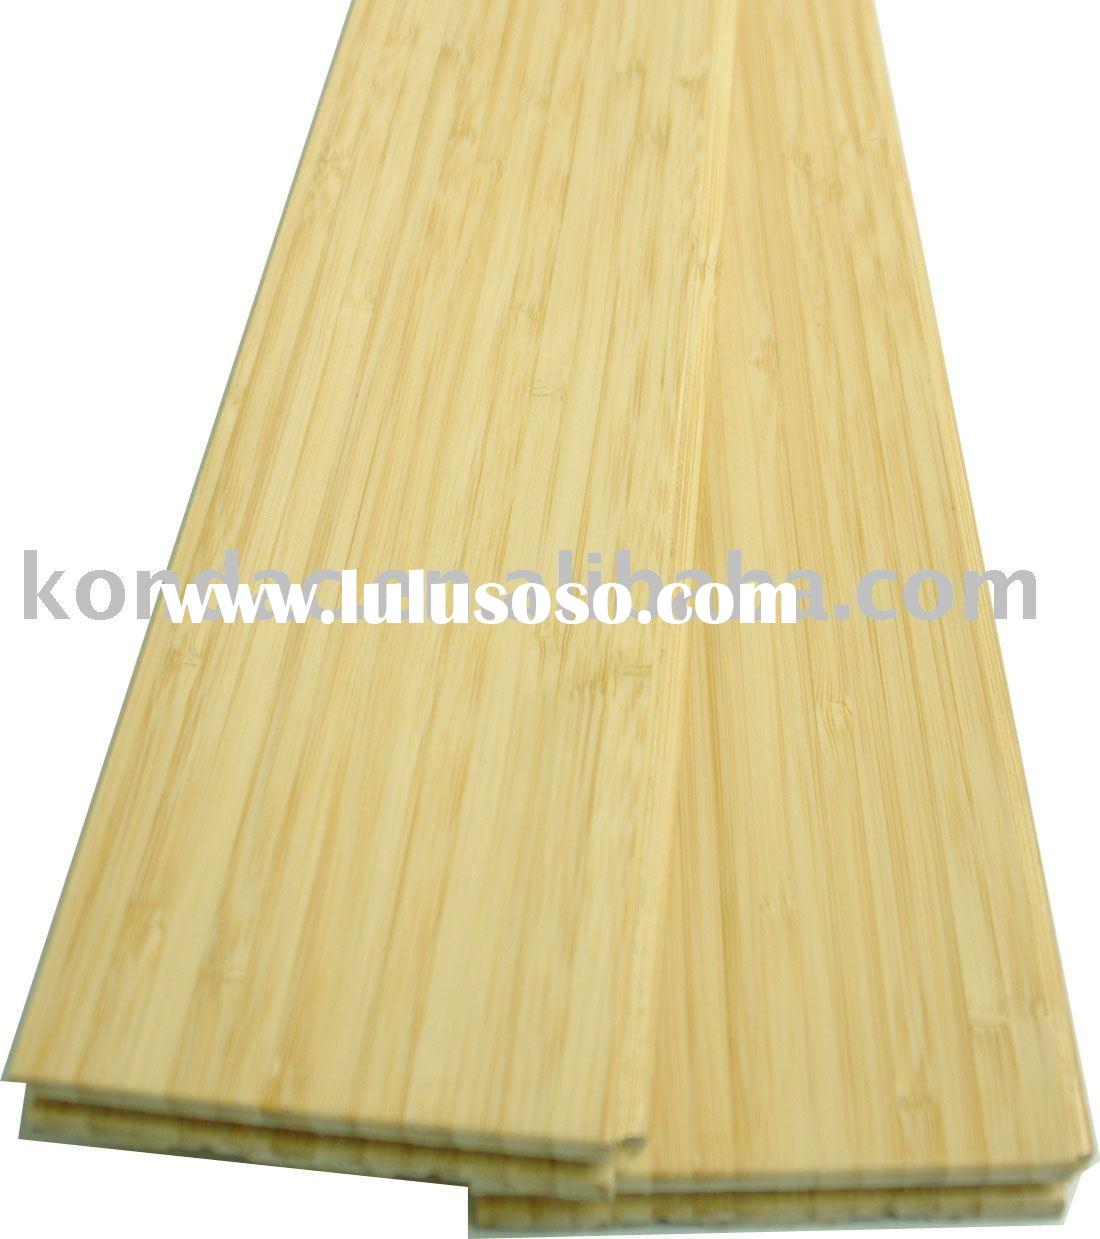 Chinese patent click system bamboo flooring